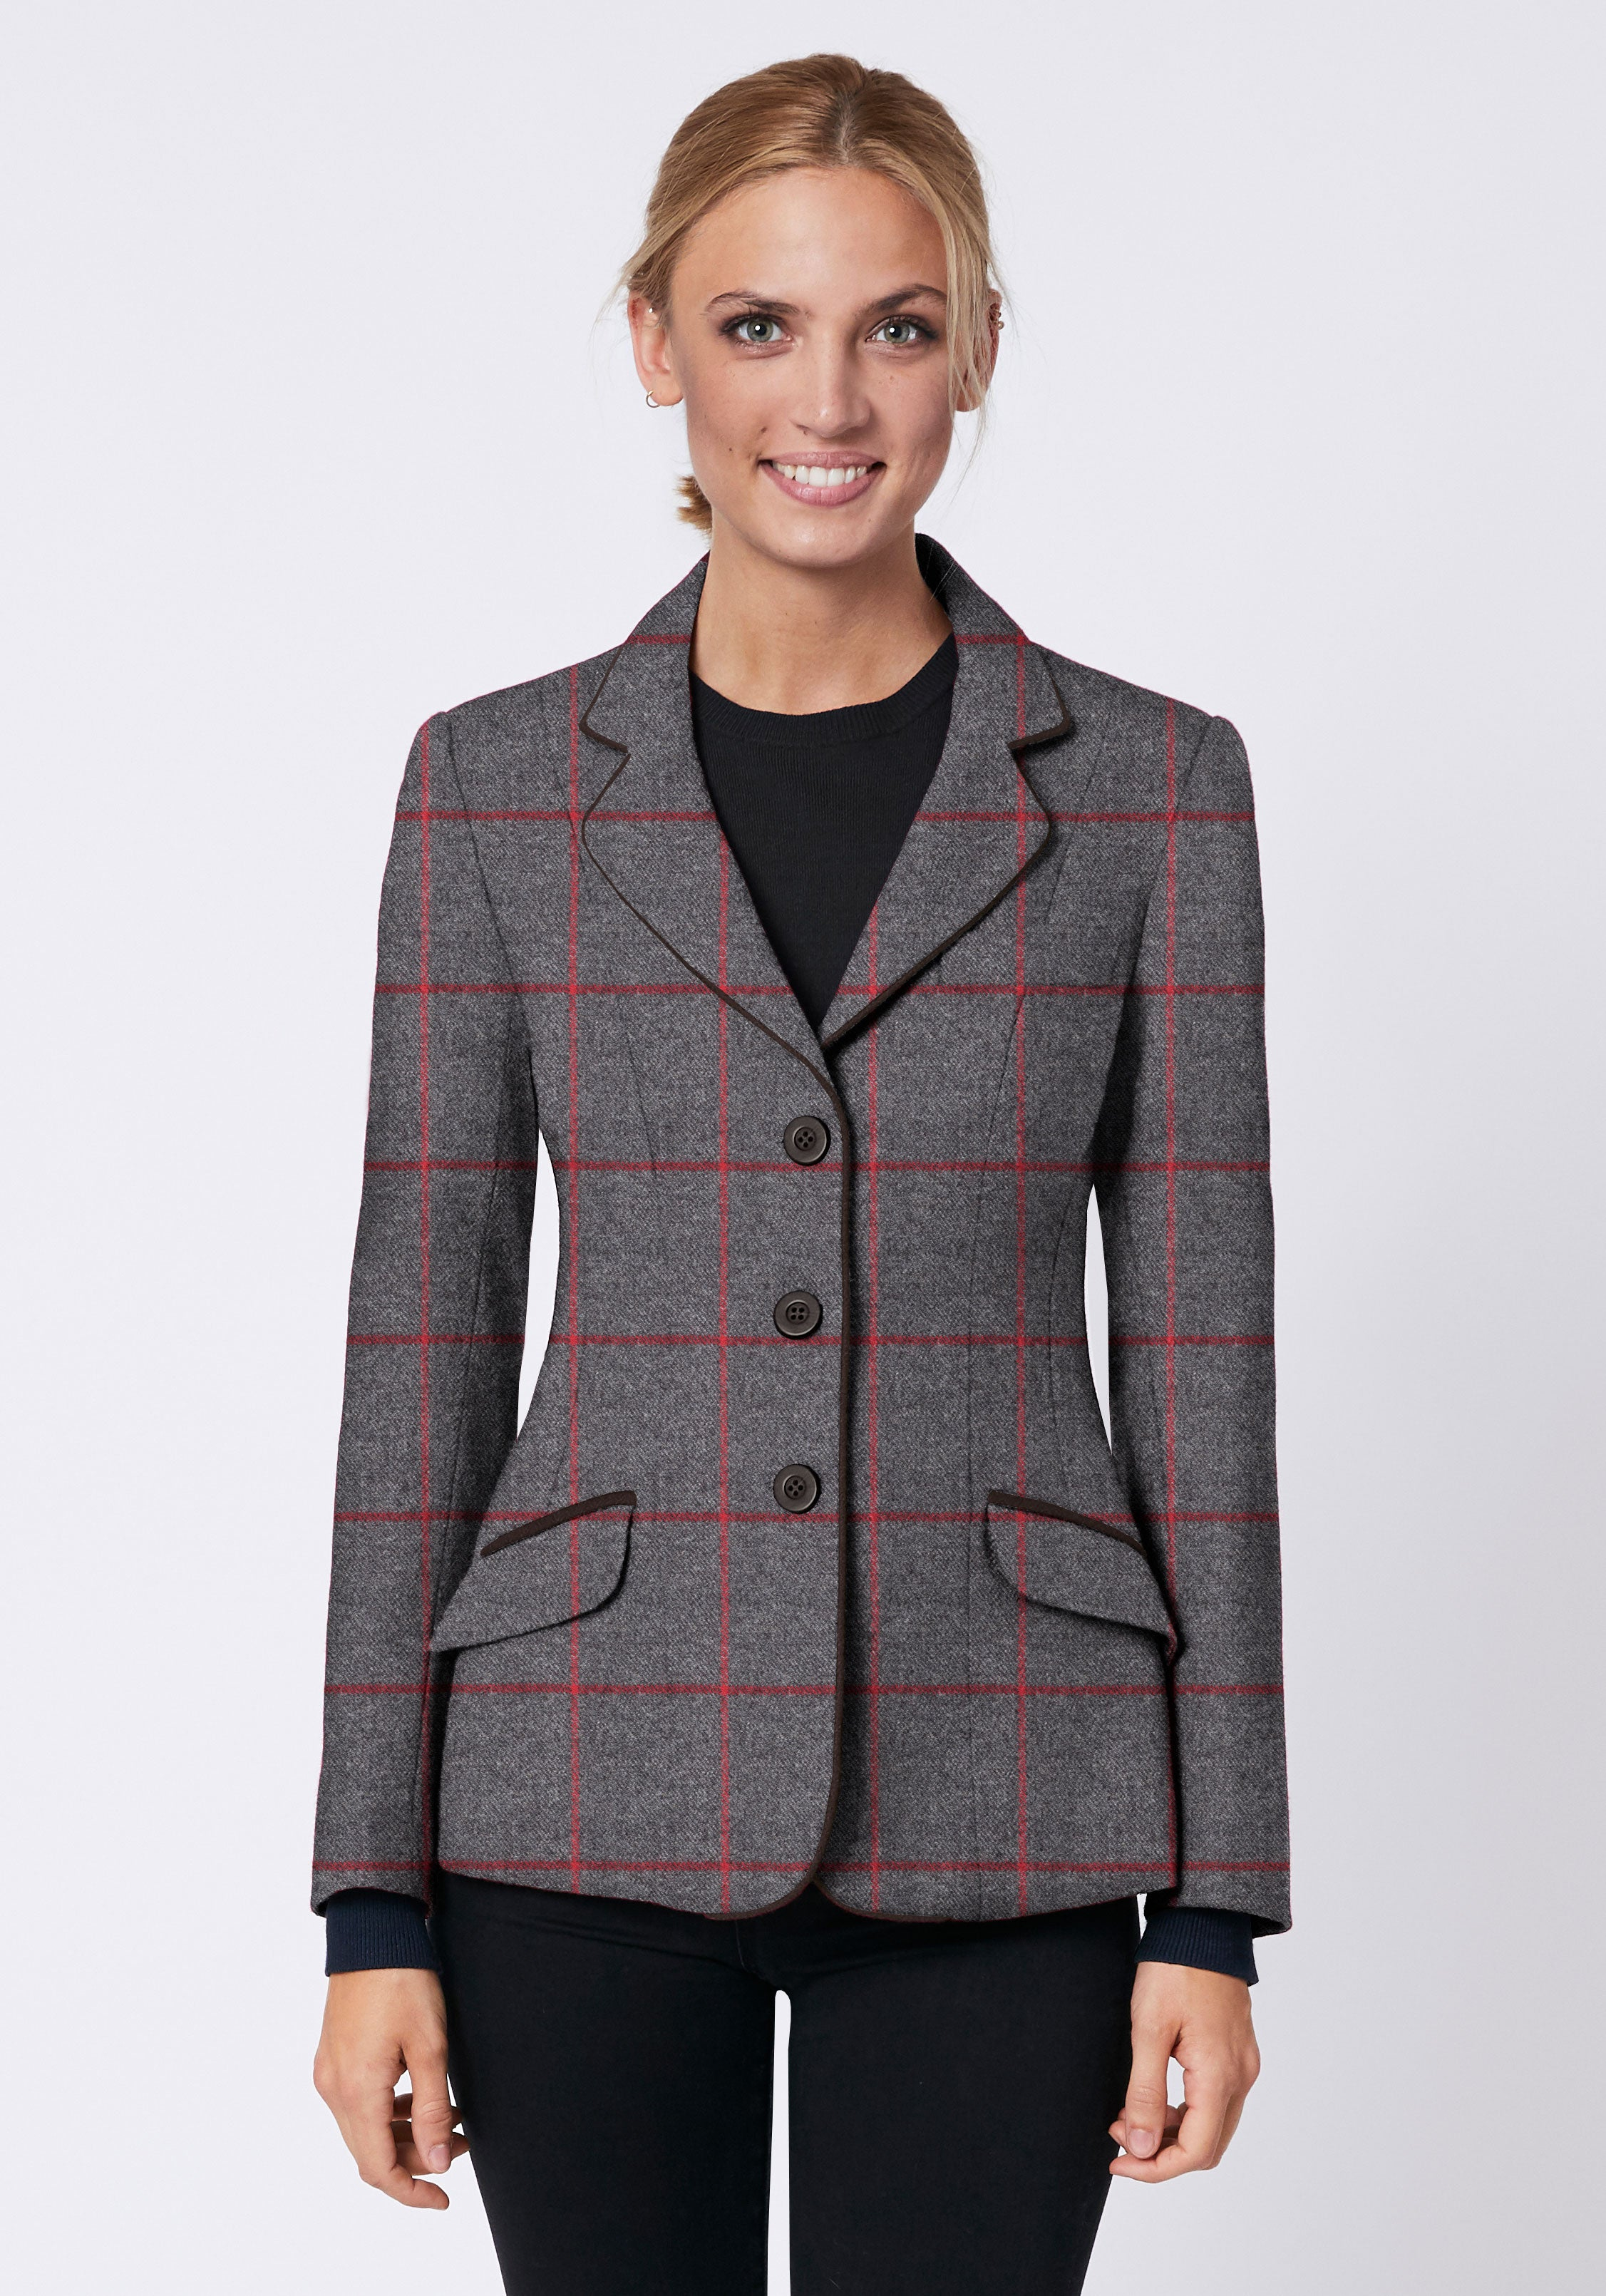 Hacking Jacket in Grey with Red Check